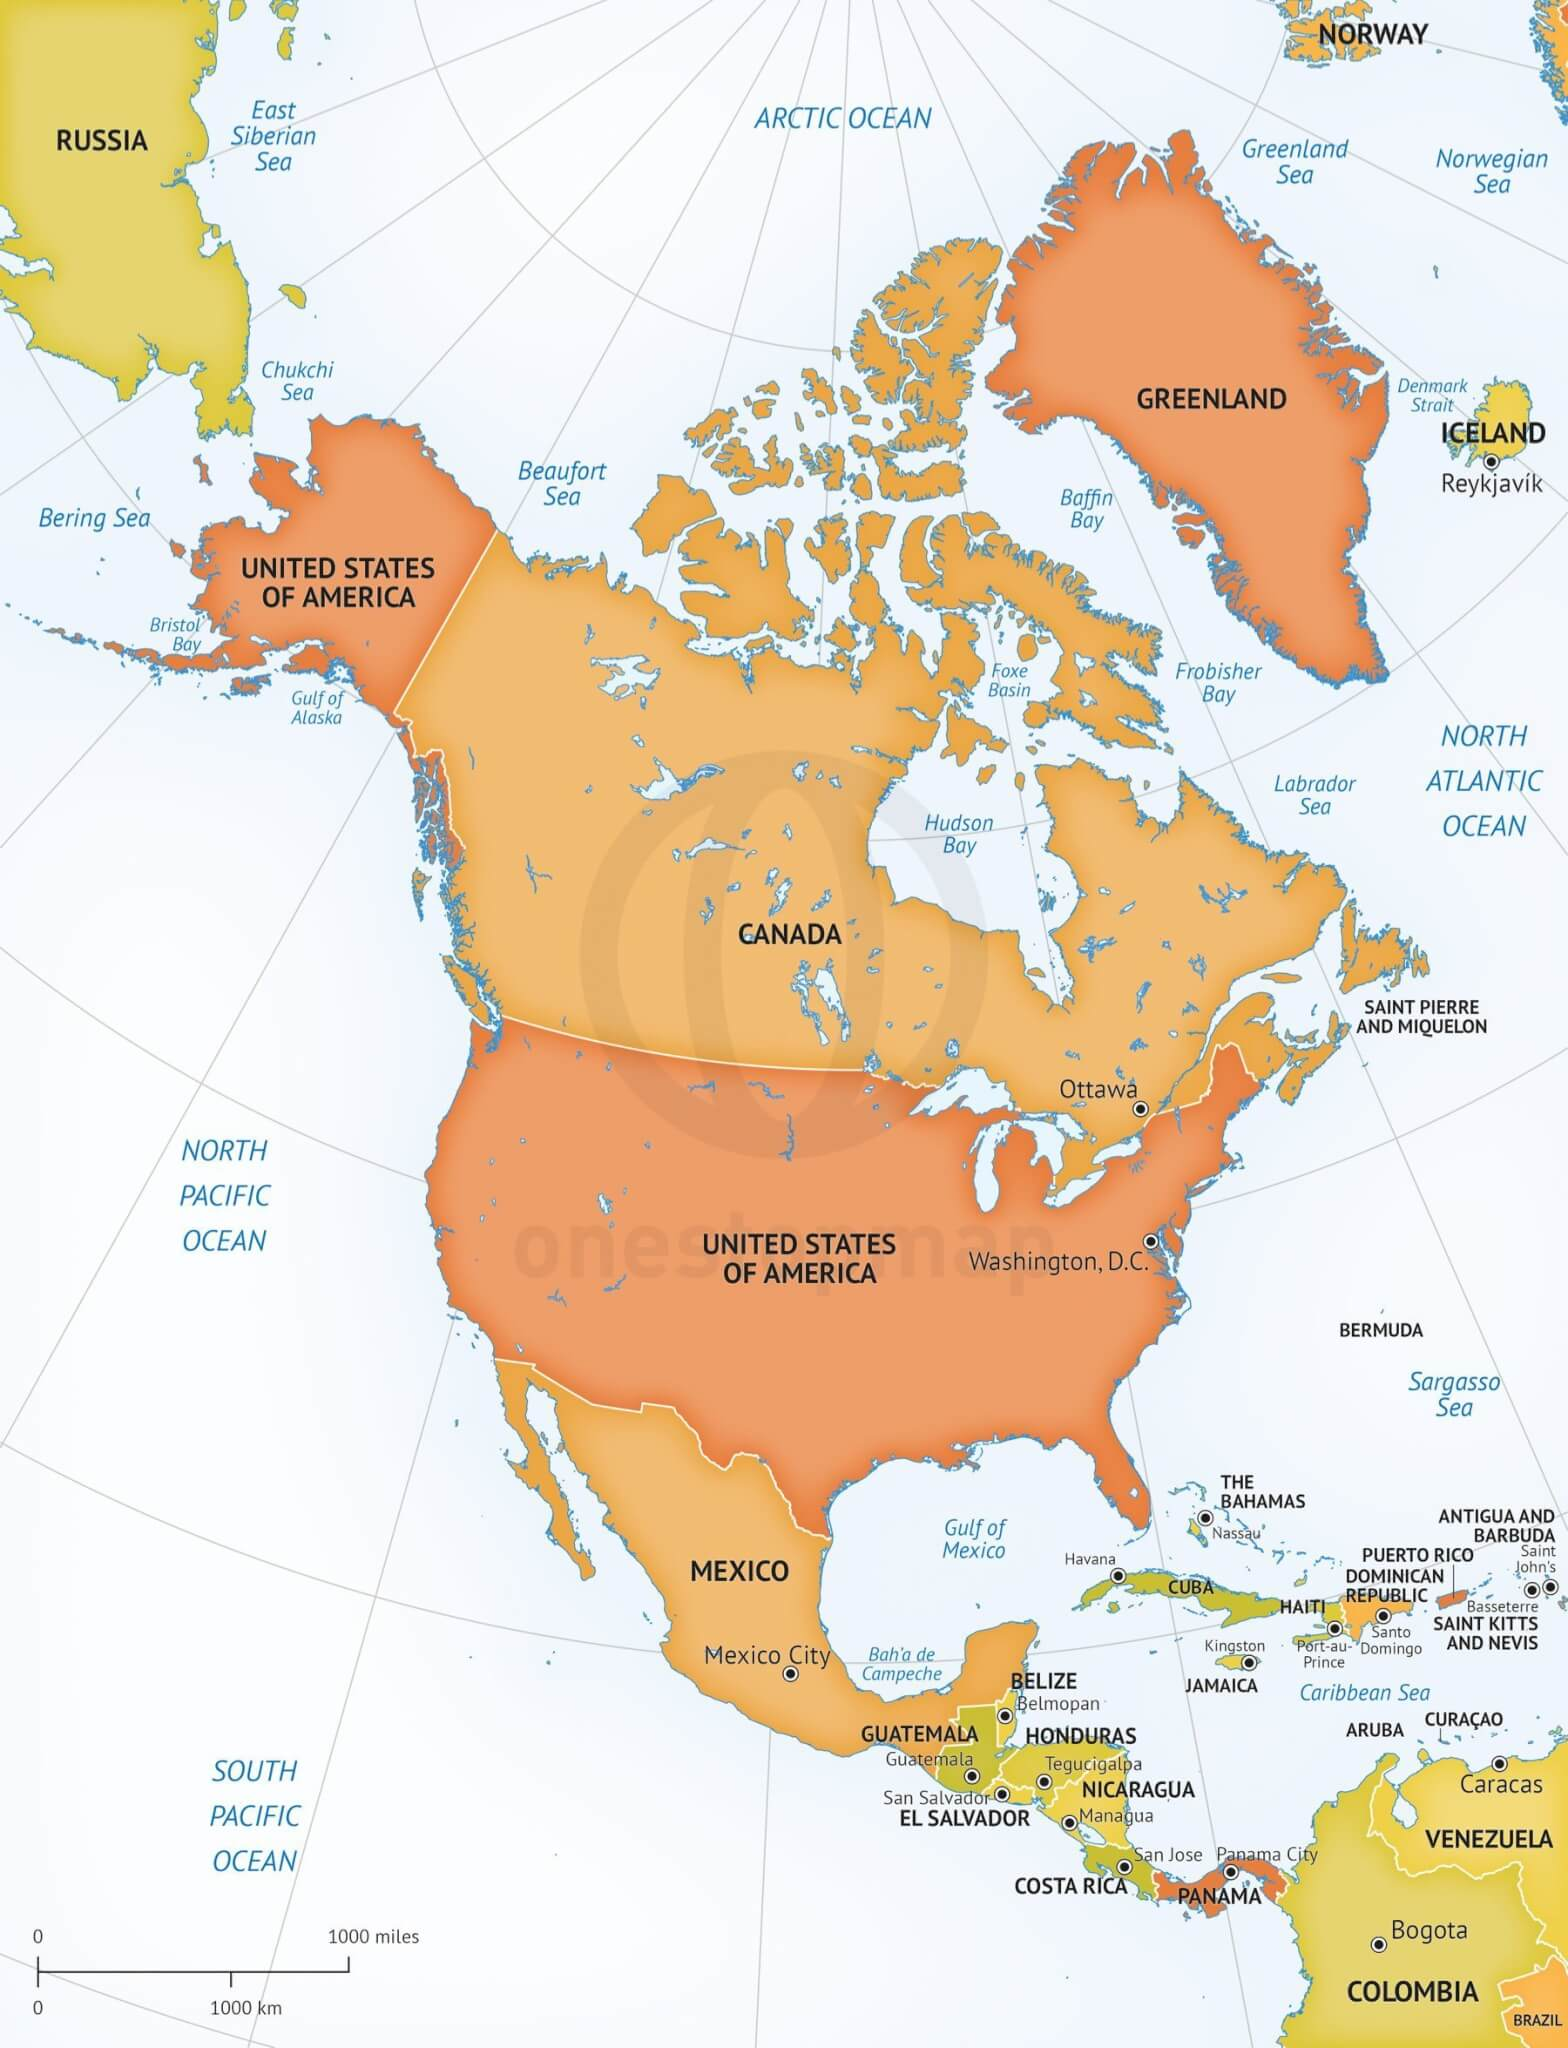 photo regarding Printable Map of North America referred to as Map of North The united states continent political